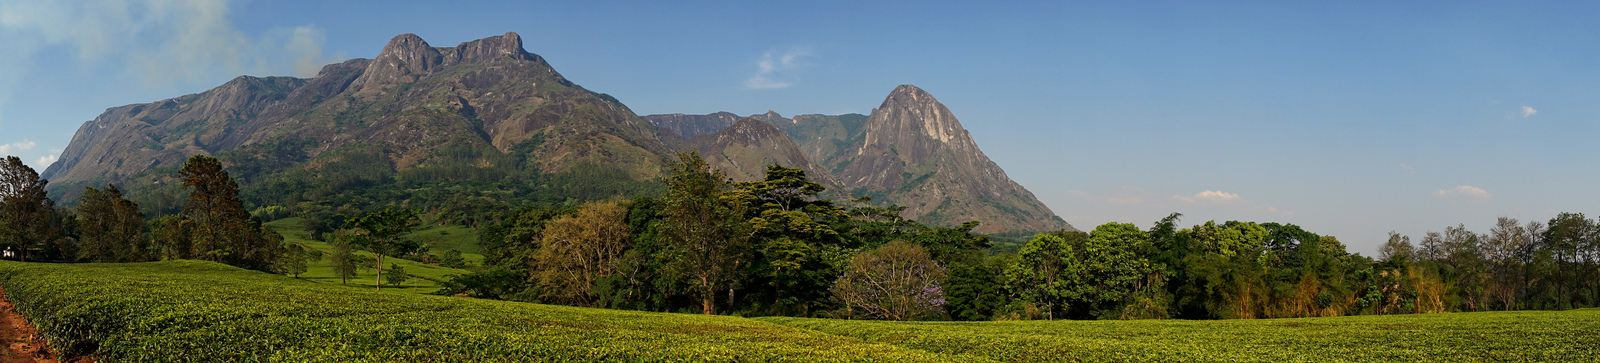 mulanje mountain6 Magnificent Mulanje Mountain and Tea Estates